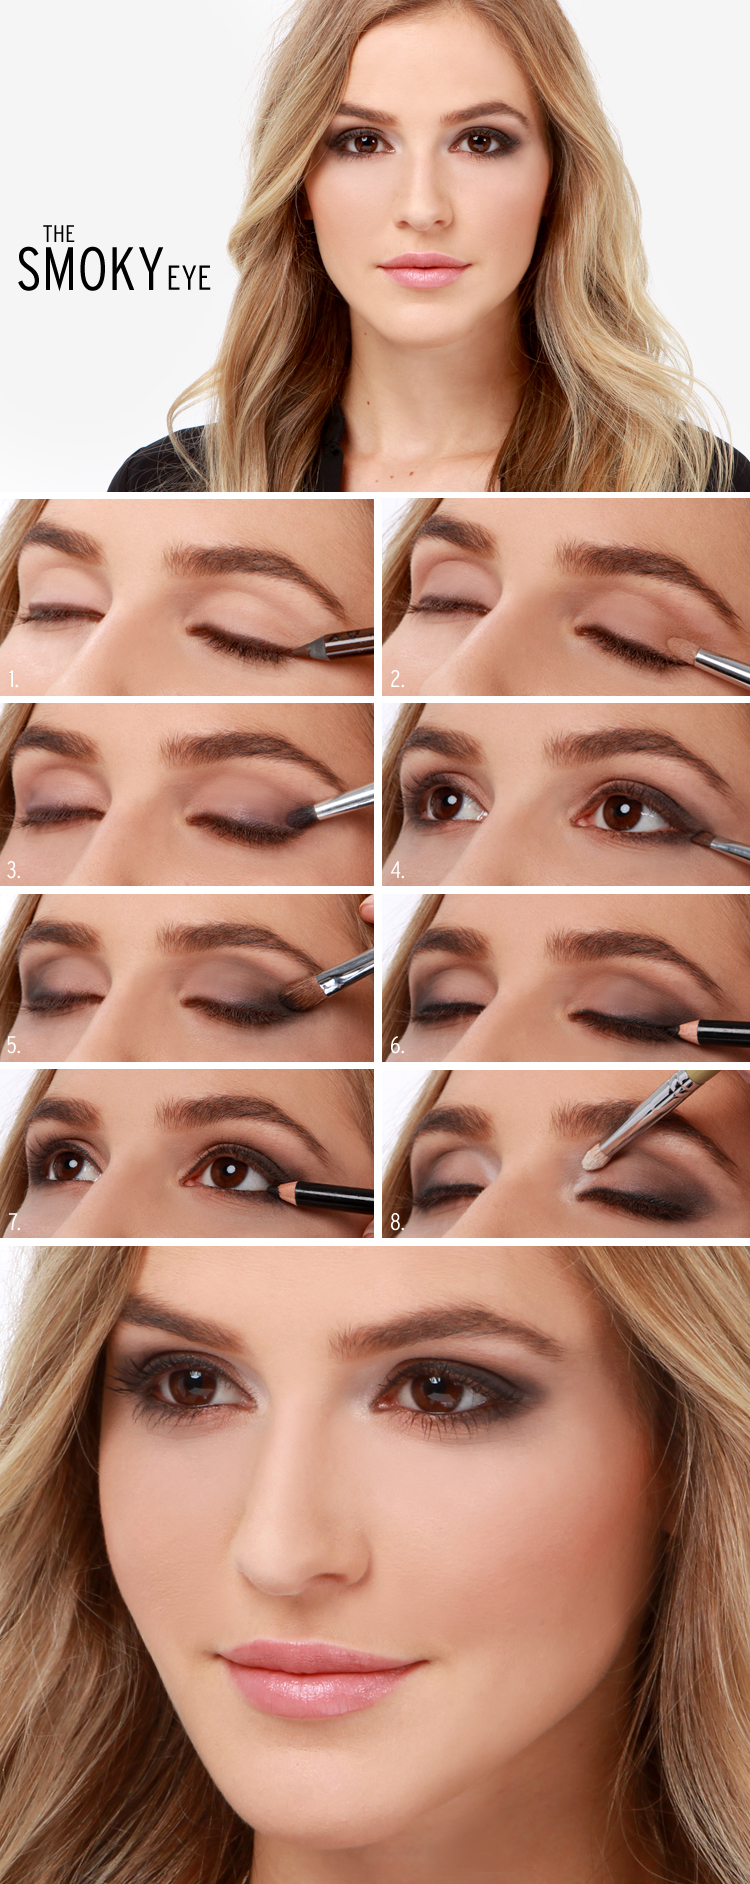 Lulus how to the smoky eye makeup tutorial lulus fashion blog lulus how to the smoky eye makeup tutorial at lulus baditri Image collections